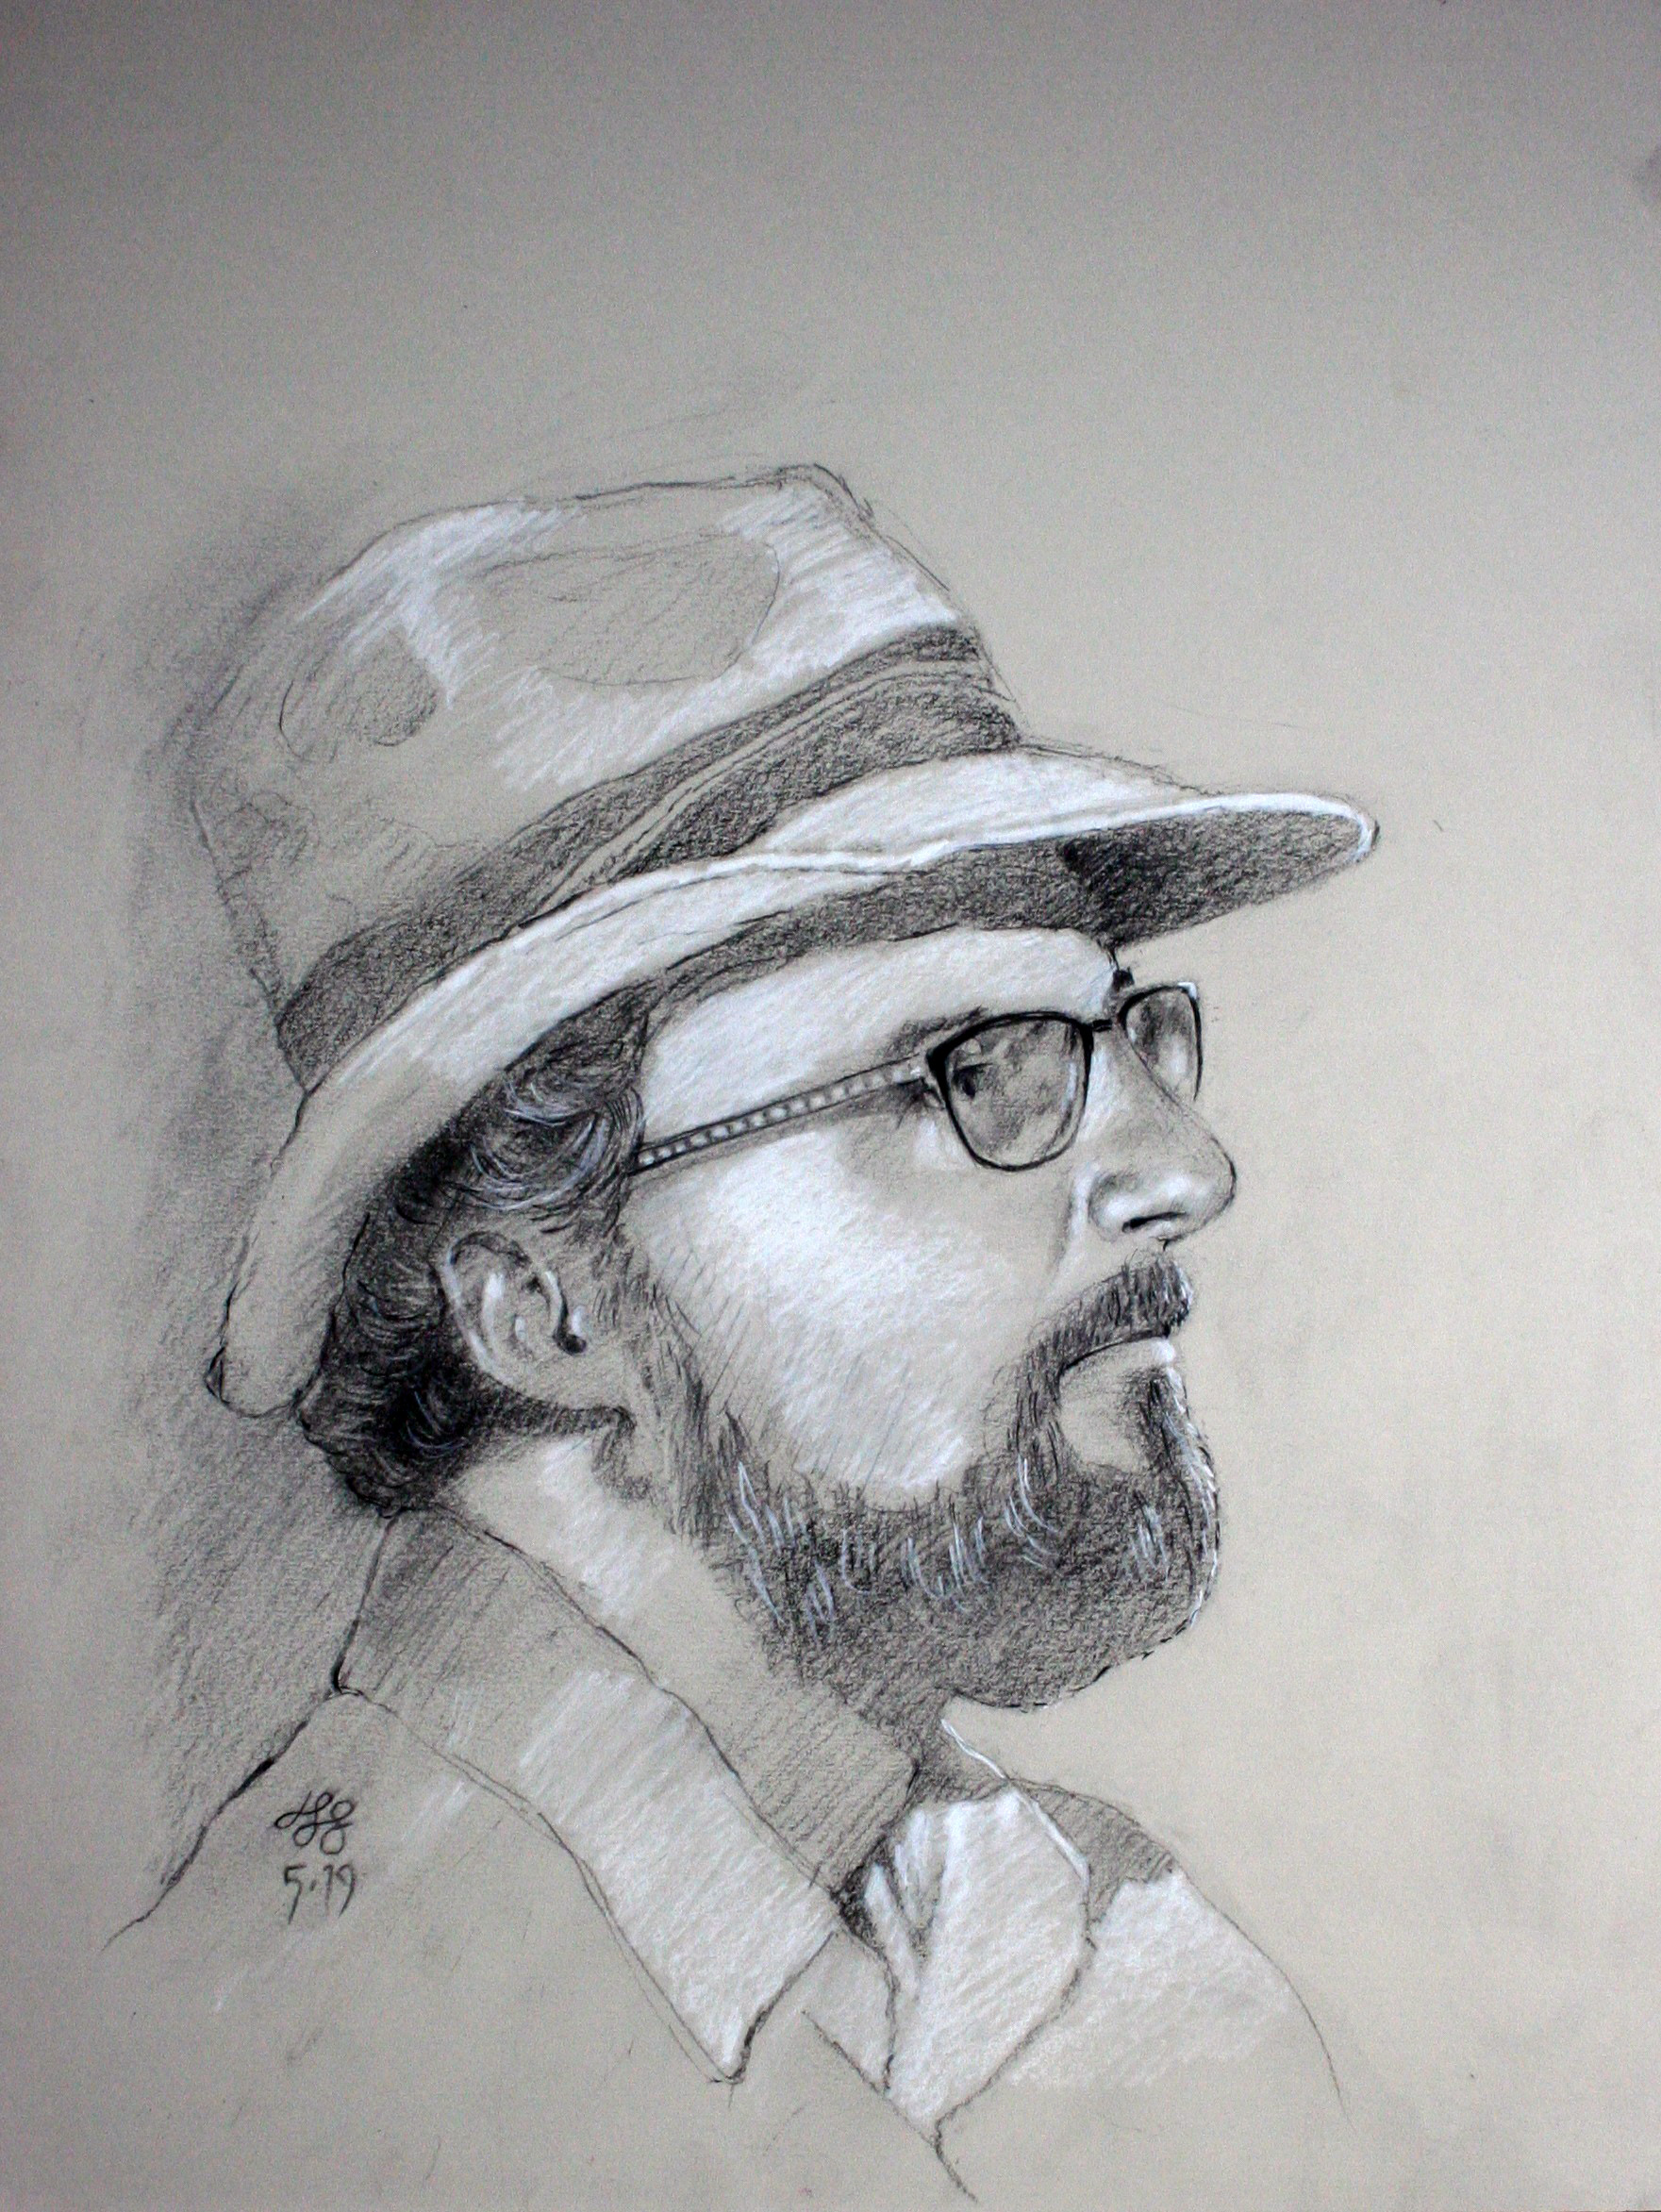 John Scavnicky did this conte drawing.